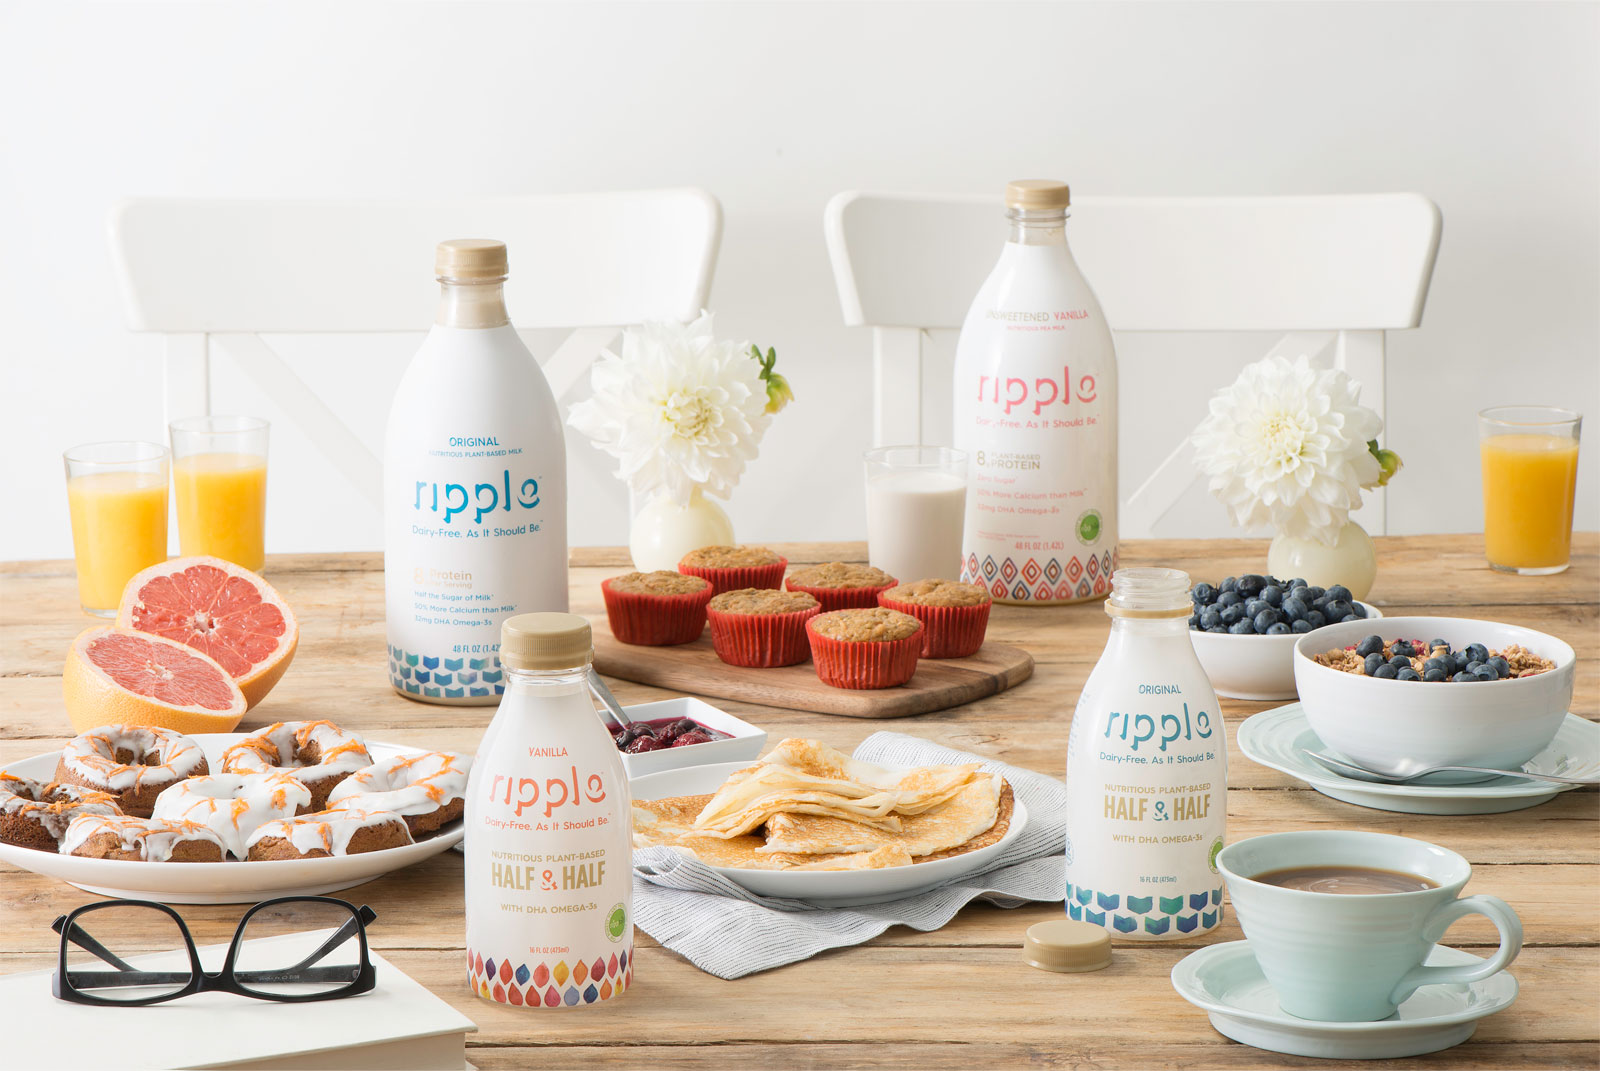 Ripple Foods plant-based milk products